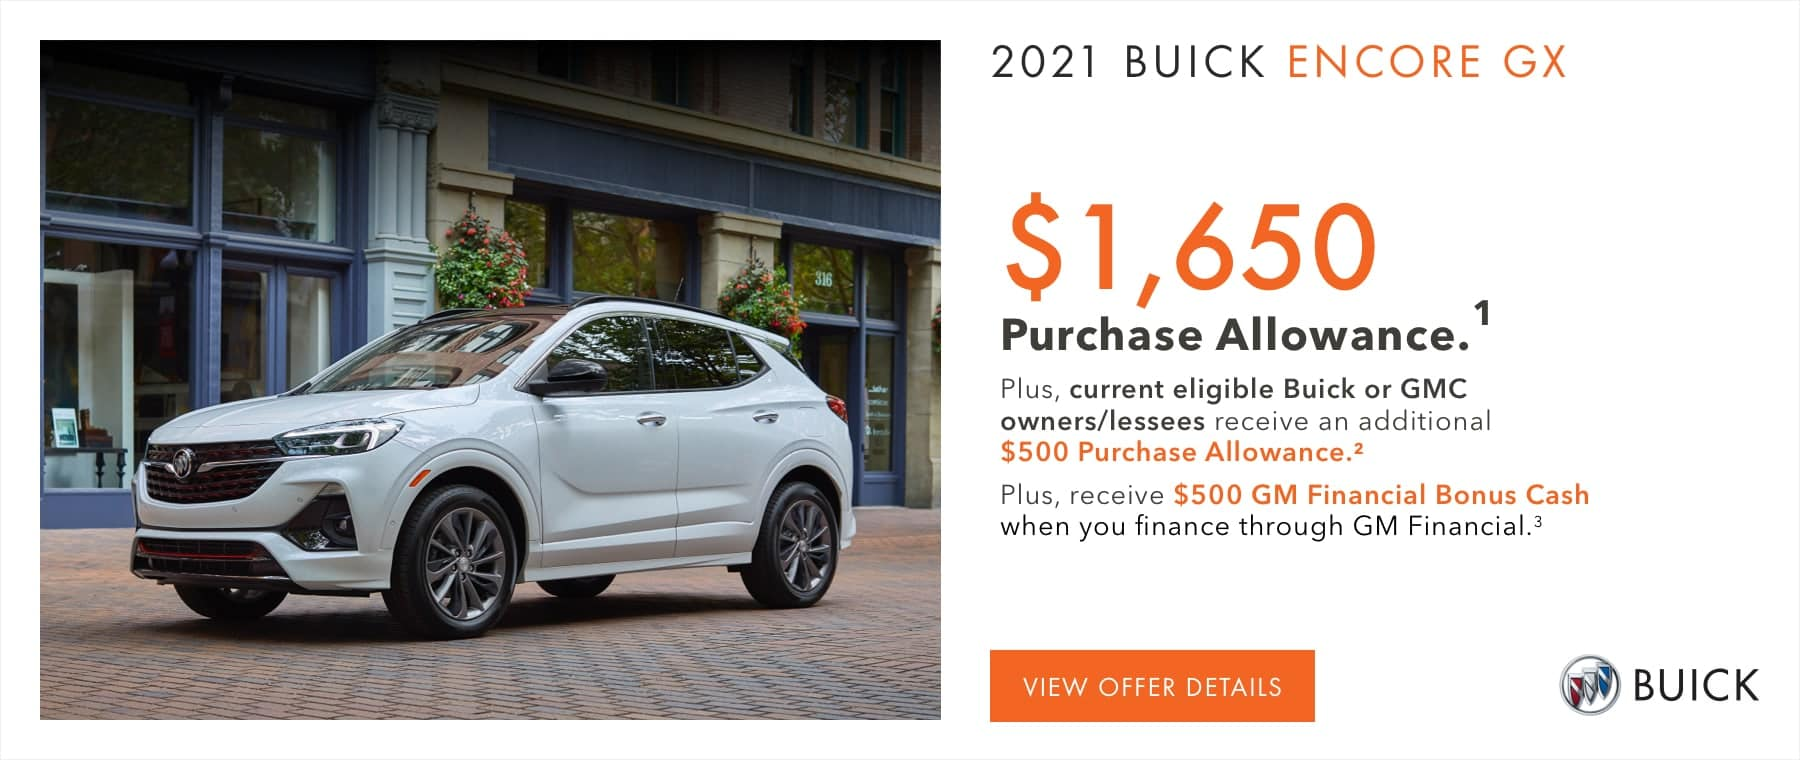 $1,650 Purchase Allowance.1 Plus, current eligible Buick or GMC owners/lessees receive an additional $500 Purchase Allowance.2 Plus, receive $500 GM Financial Bonus Cash when you finance through GM Financial.3